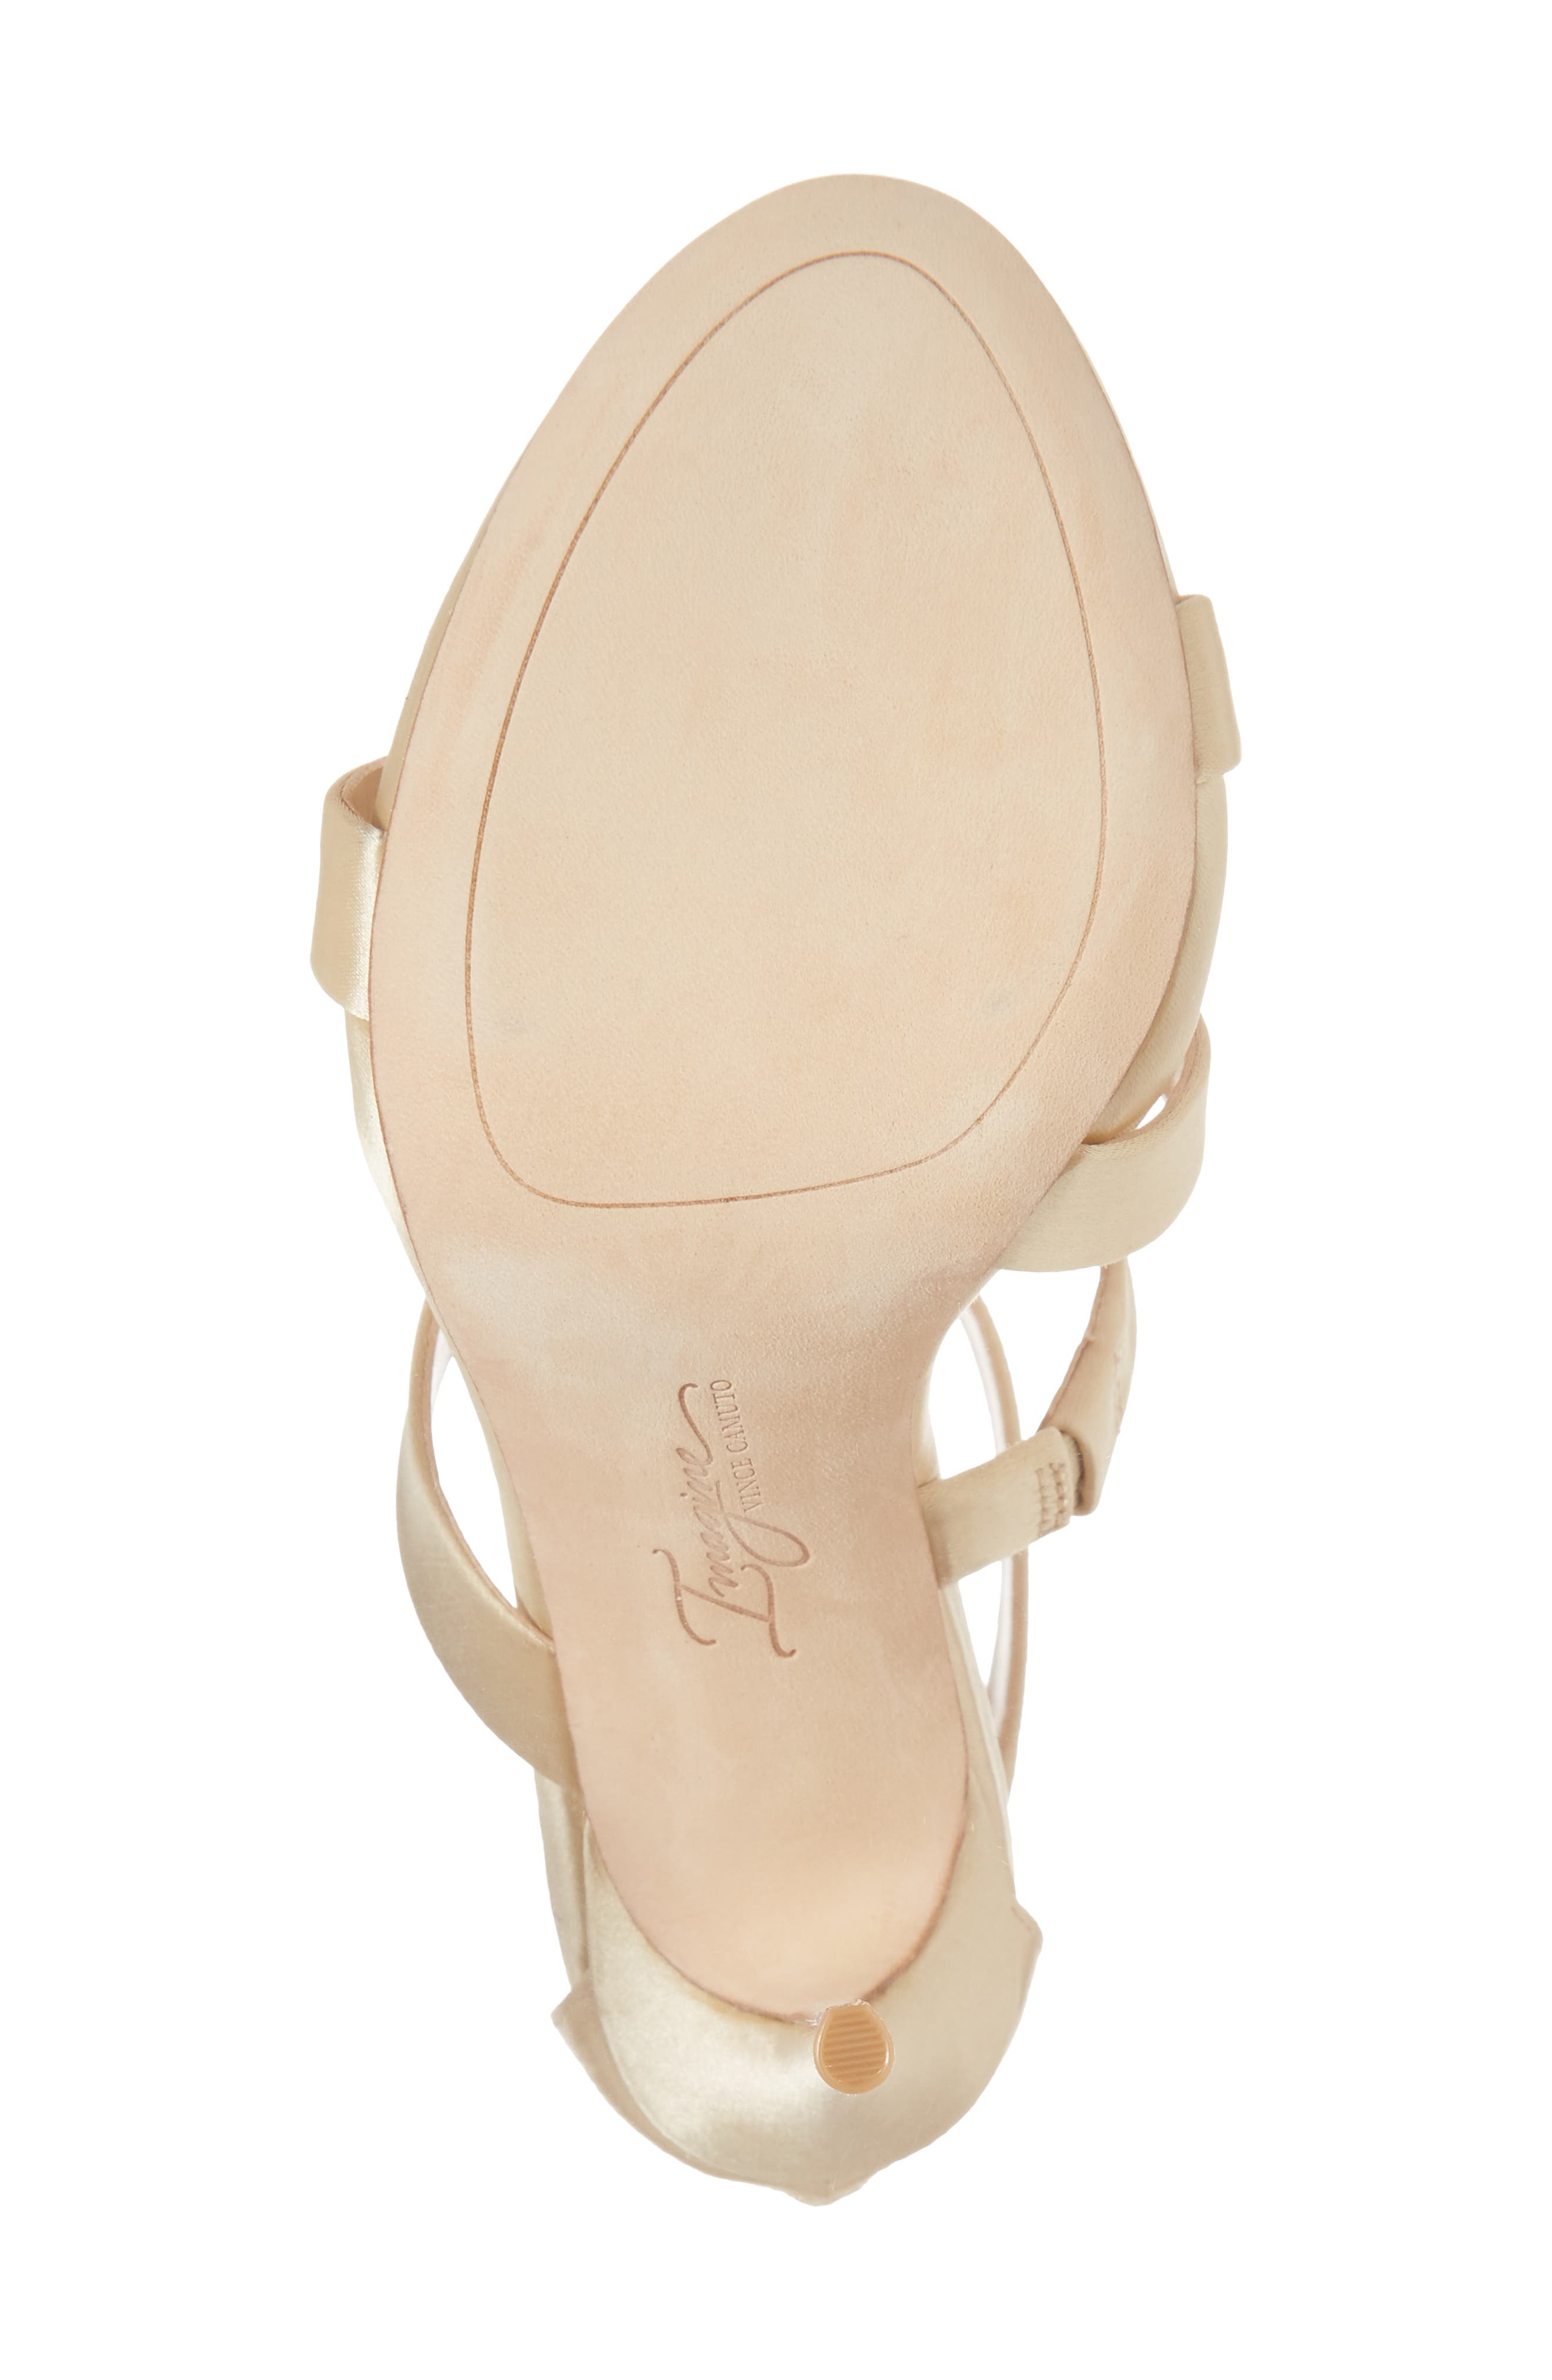 Imagine Vince Camuto Dalles Tall Strappy Sandal,                             Alternate thumbnail 6, color,                             SOFT GOLD SATIN